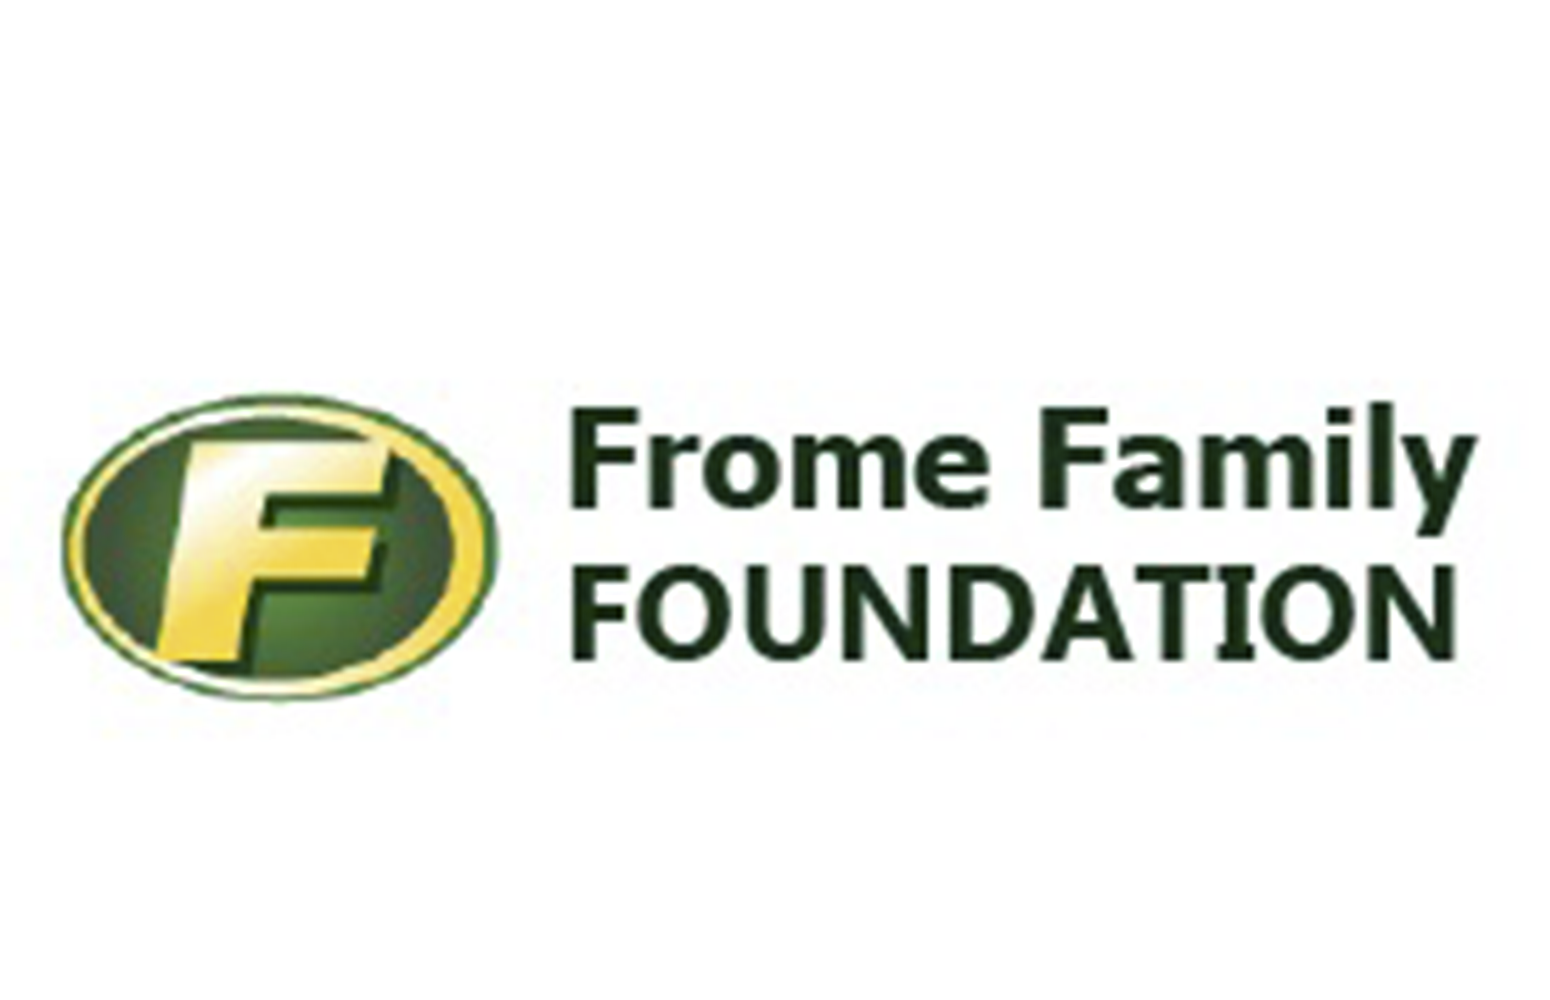 Frome Family Foundation